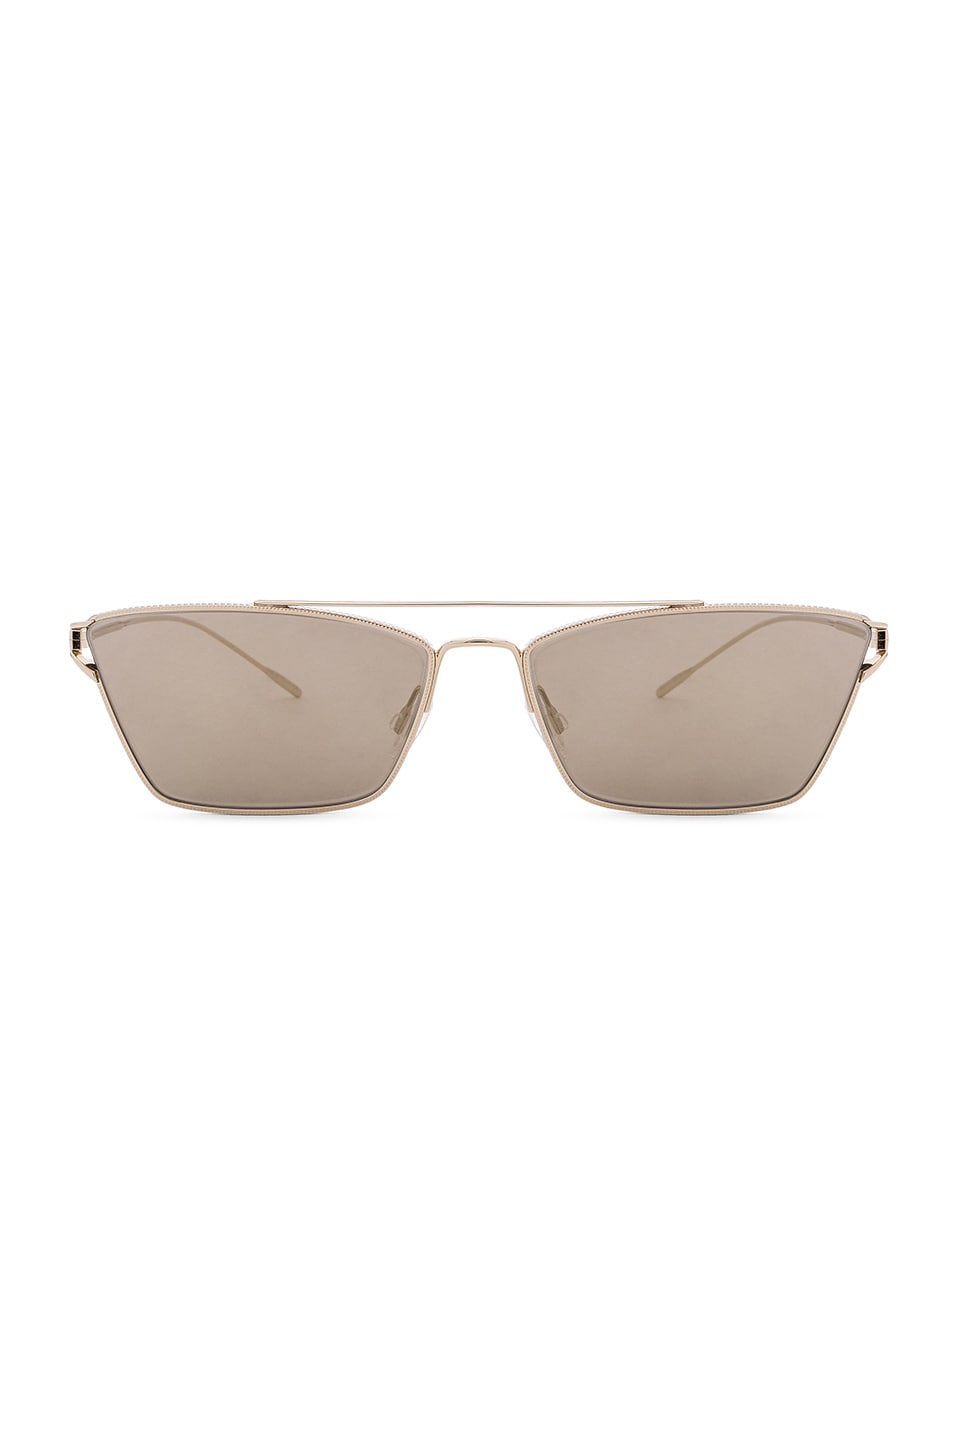 Oliver Peoples Evey in Gold & Taupe Flash Mirror